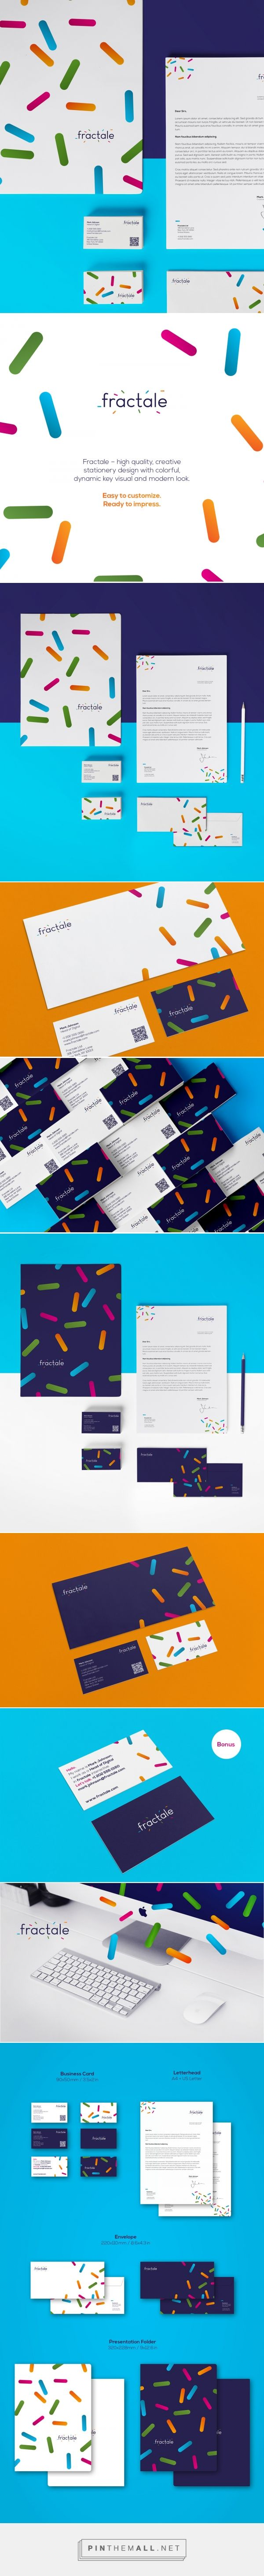 Fractale Stationery by miunik